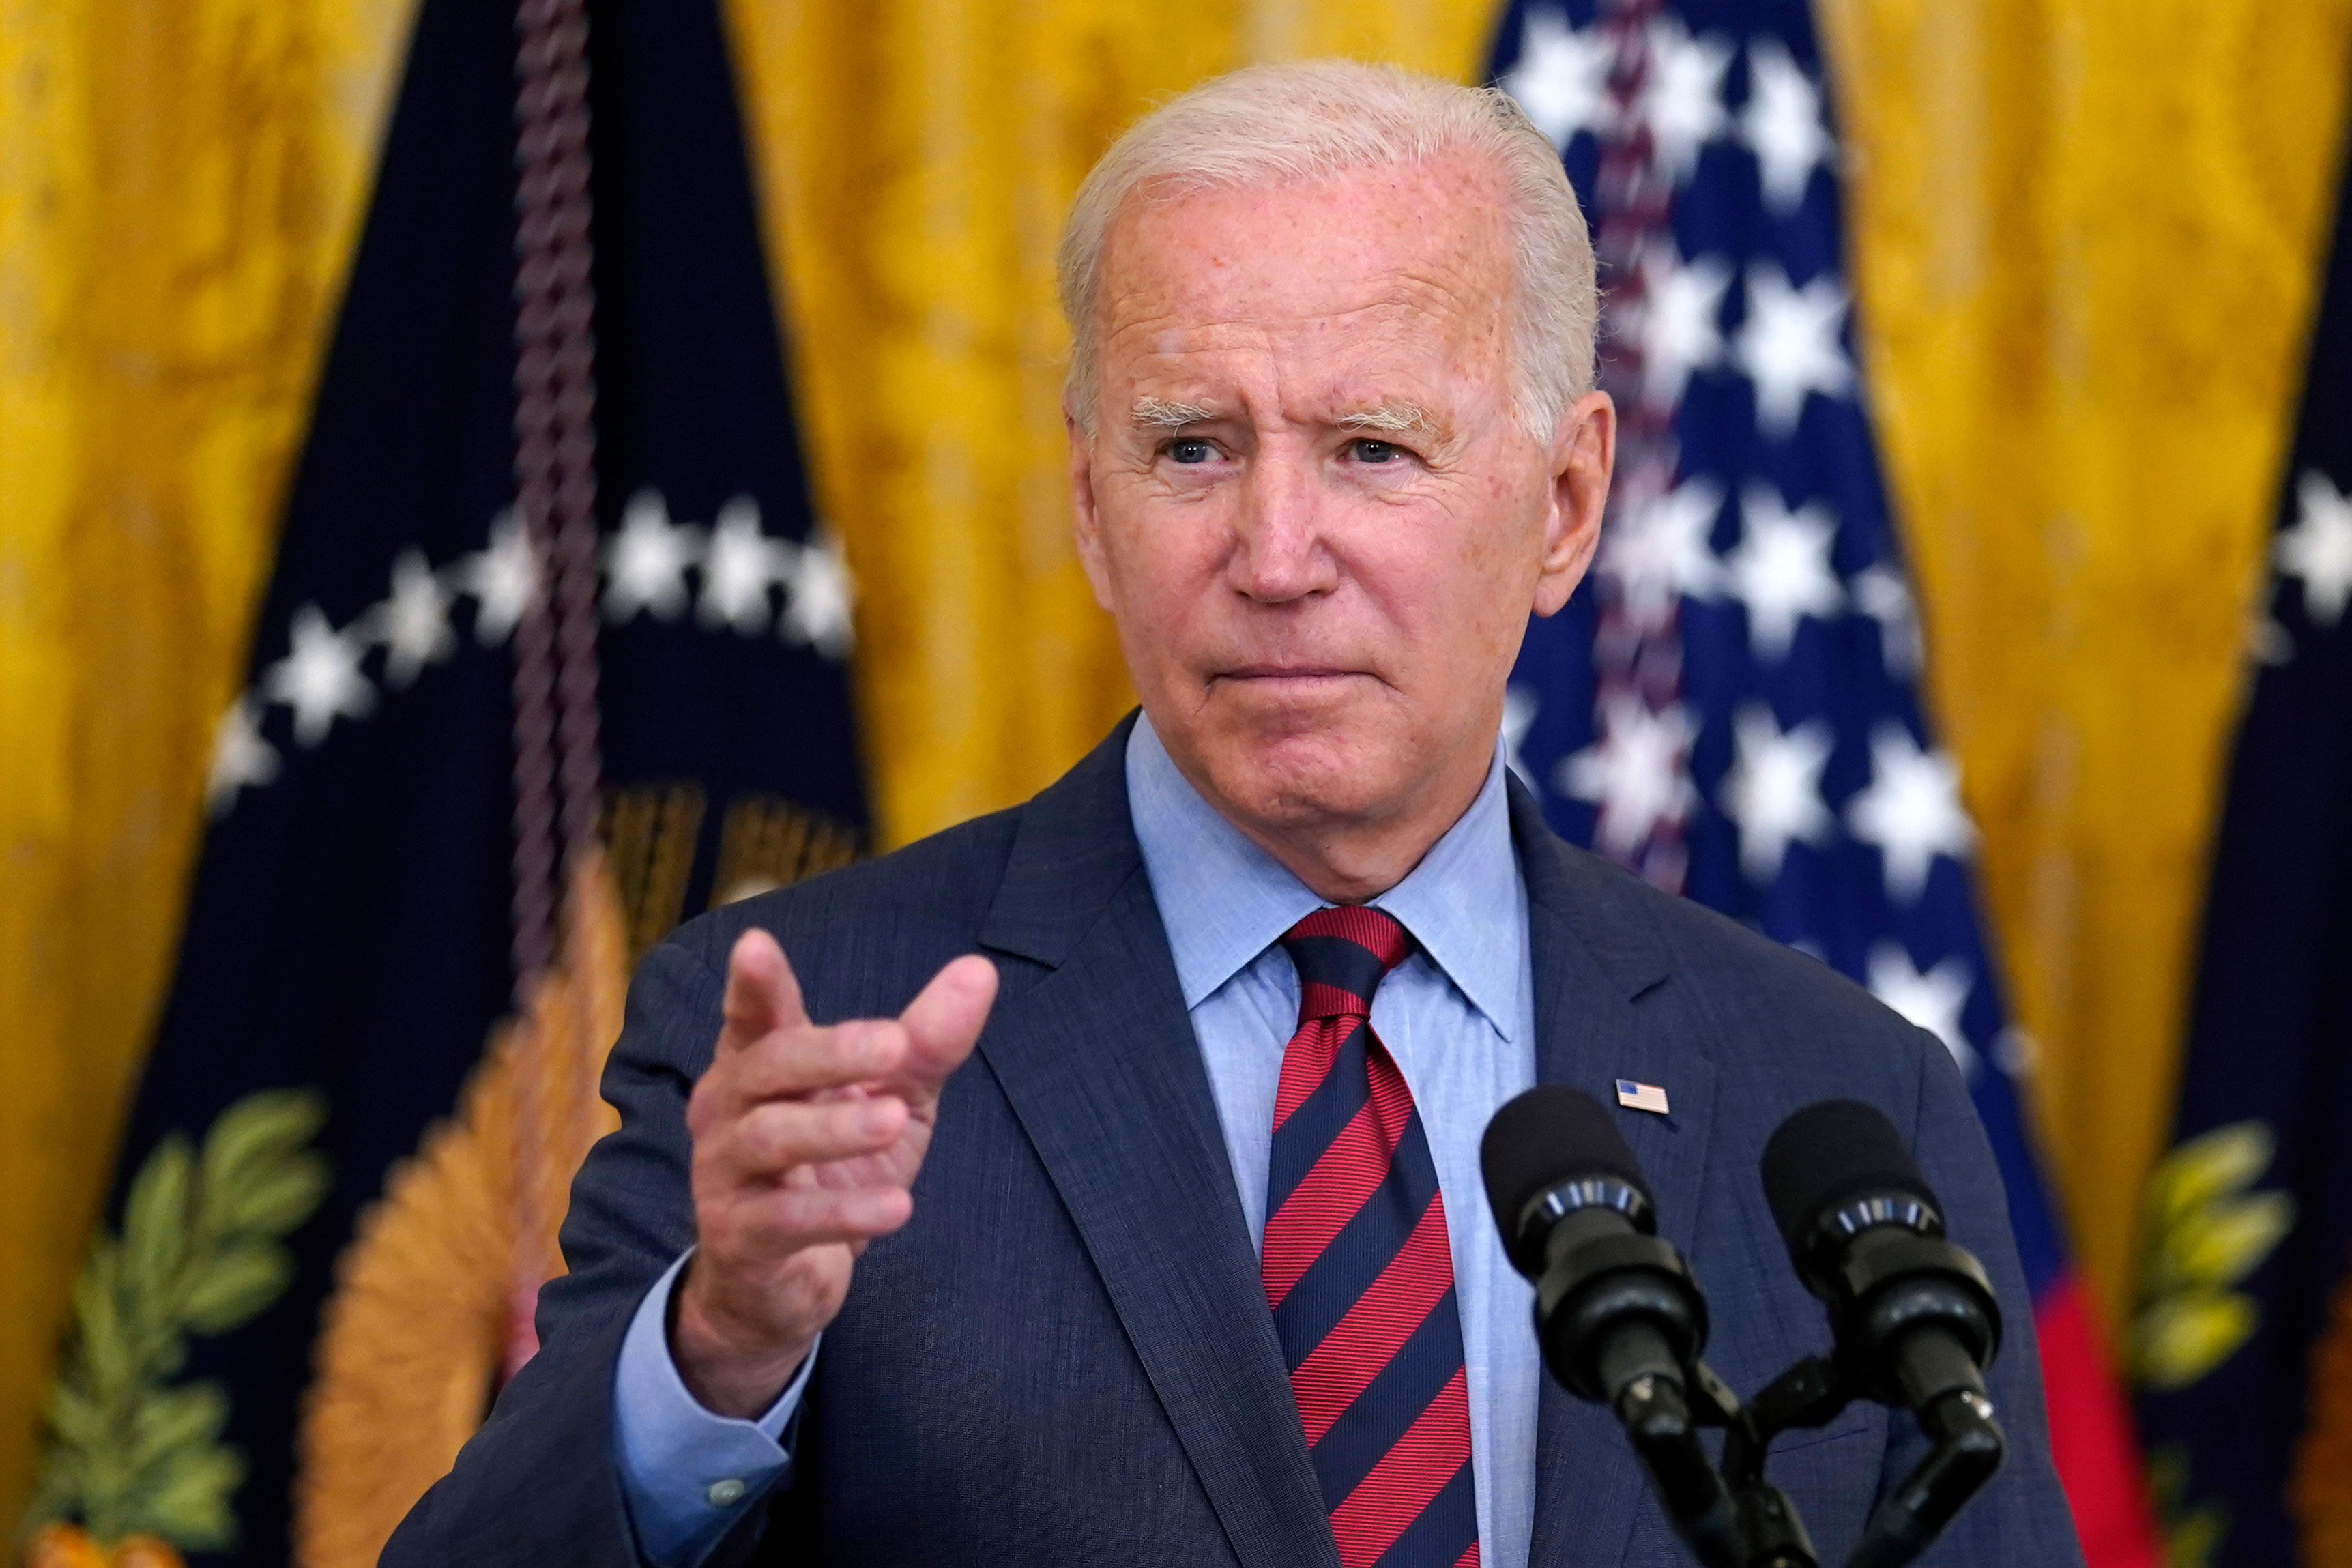 President Joe Biden gestures to a reporter to ask him a question as he speaks about the coronavirus pandemic in the East Room of the White House on, Tuesday, August 3.